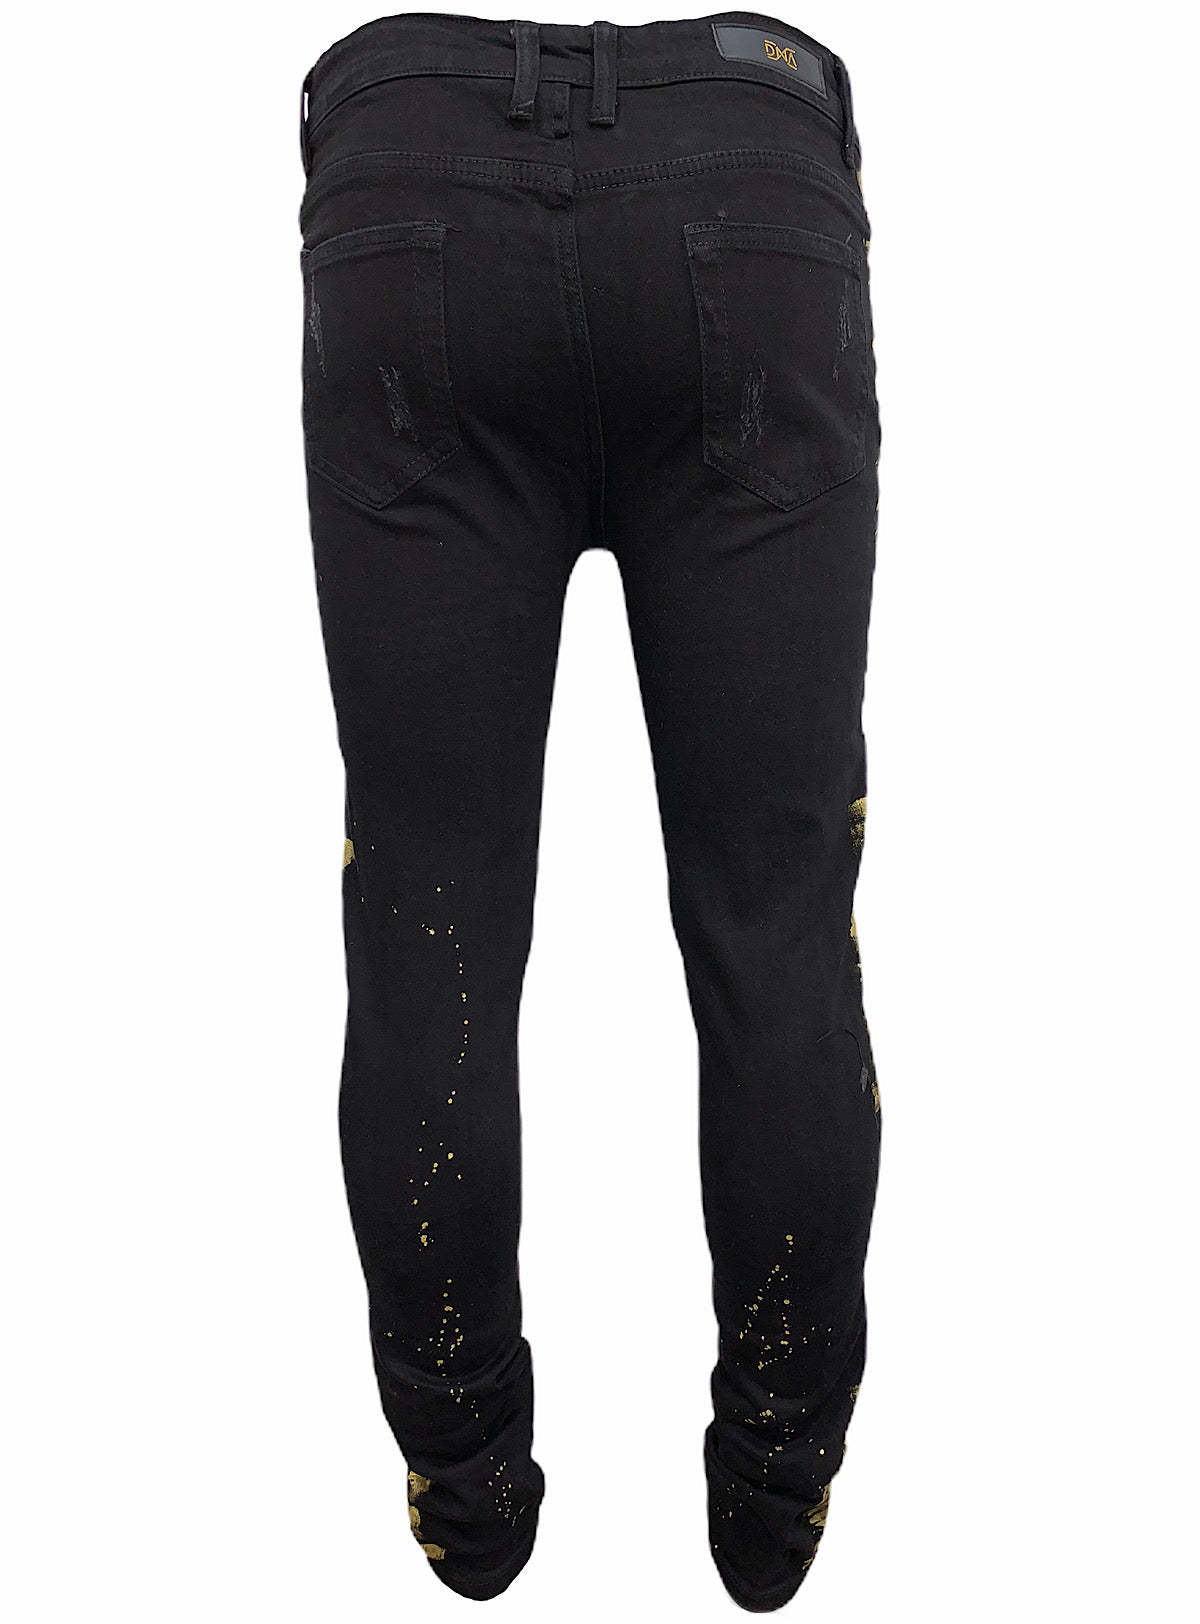 DNA Jeans - Stones and Paint - Black/Gold - FL011